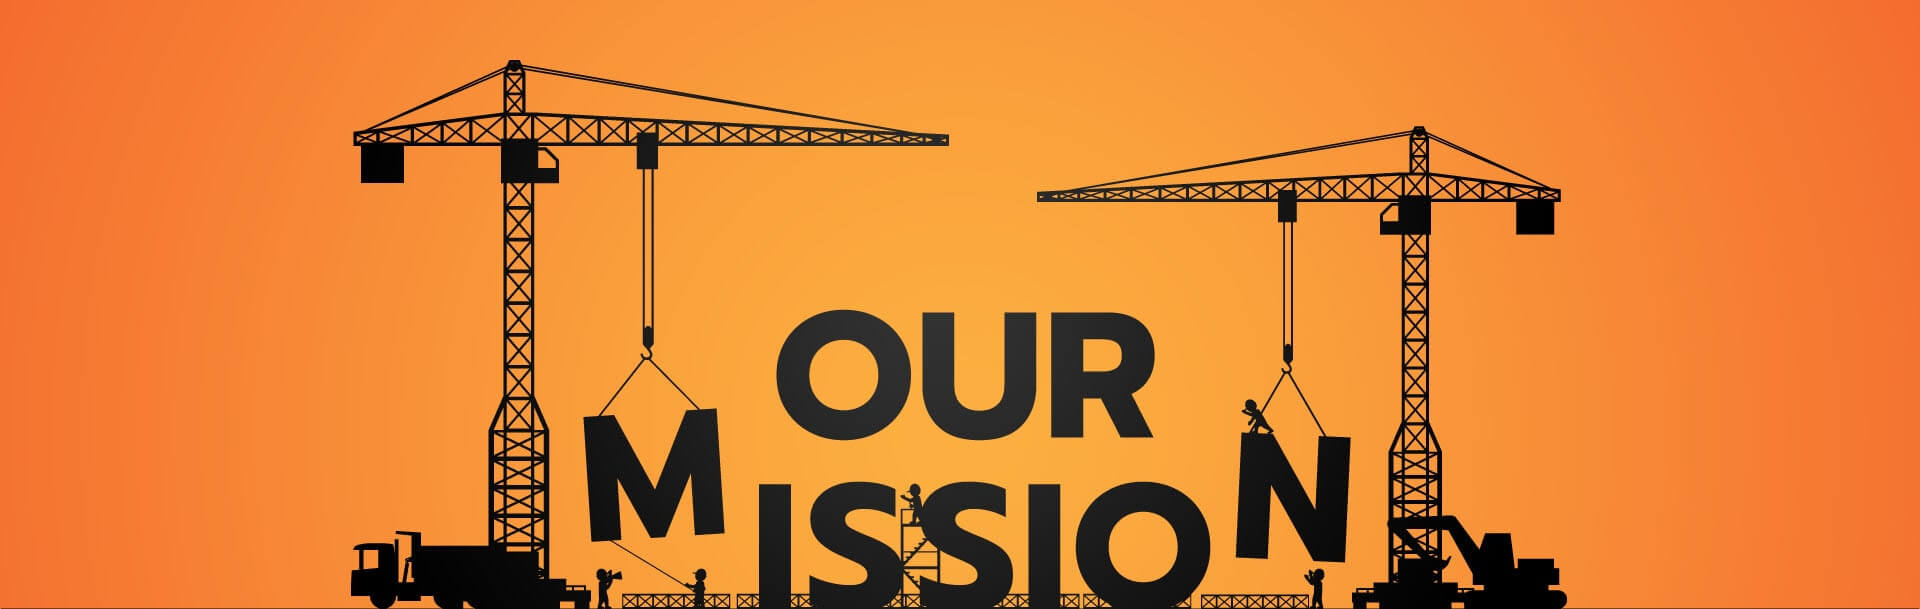 Our Mission Background